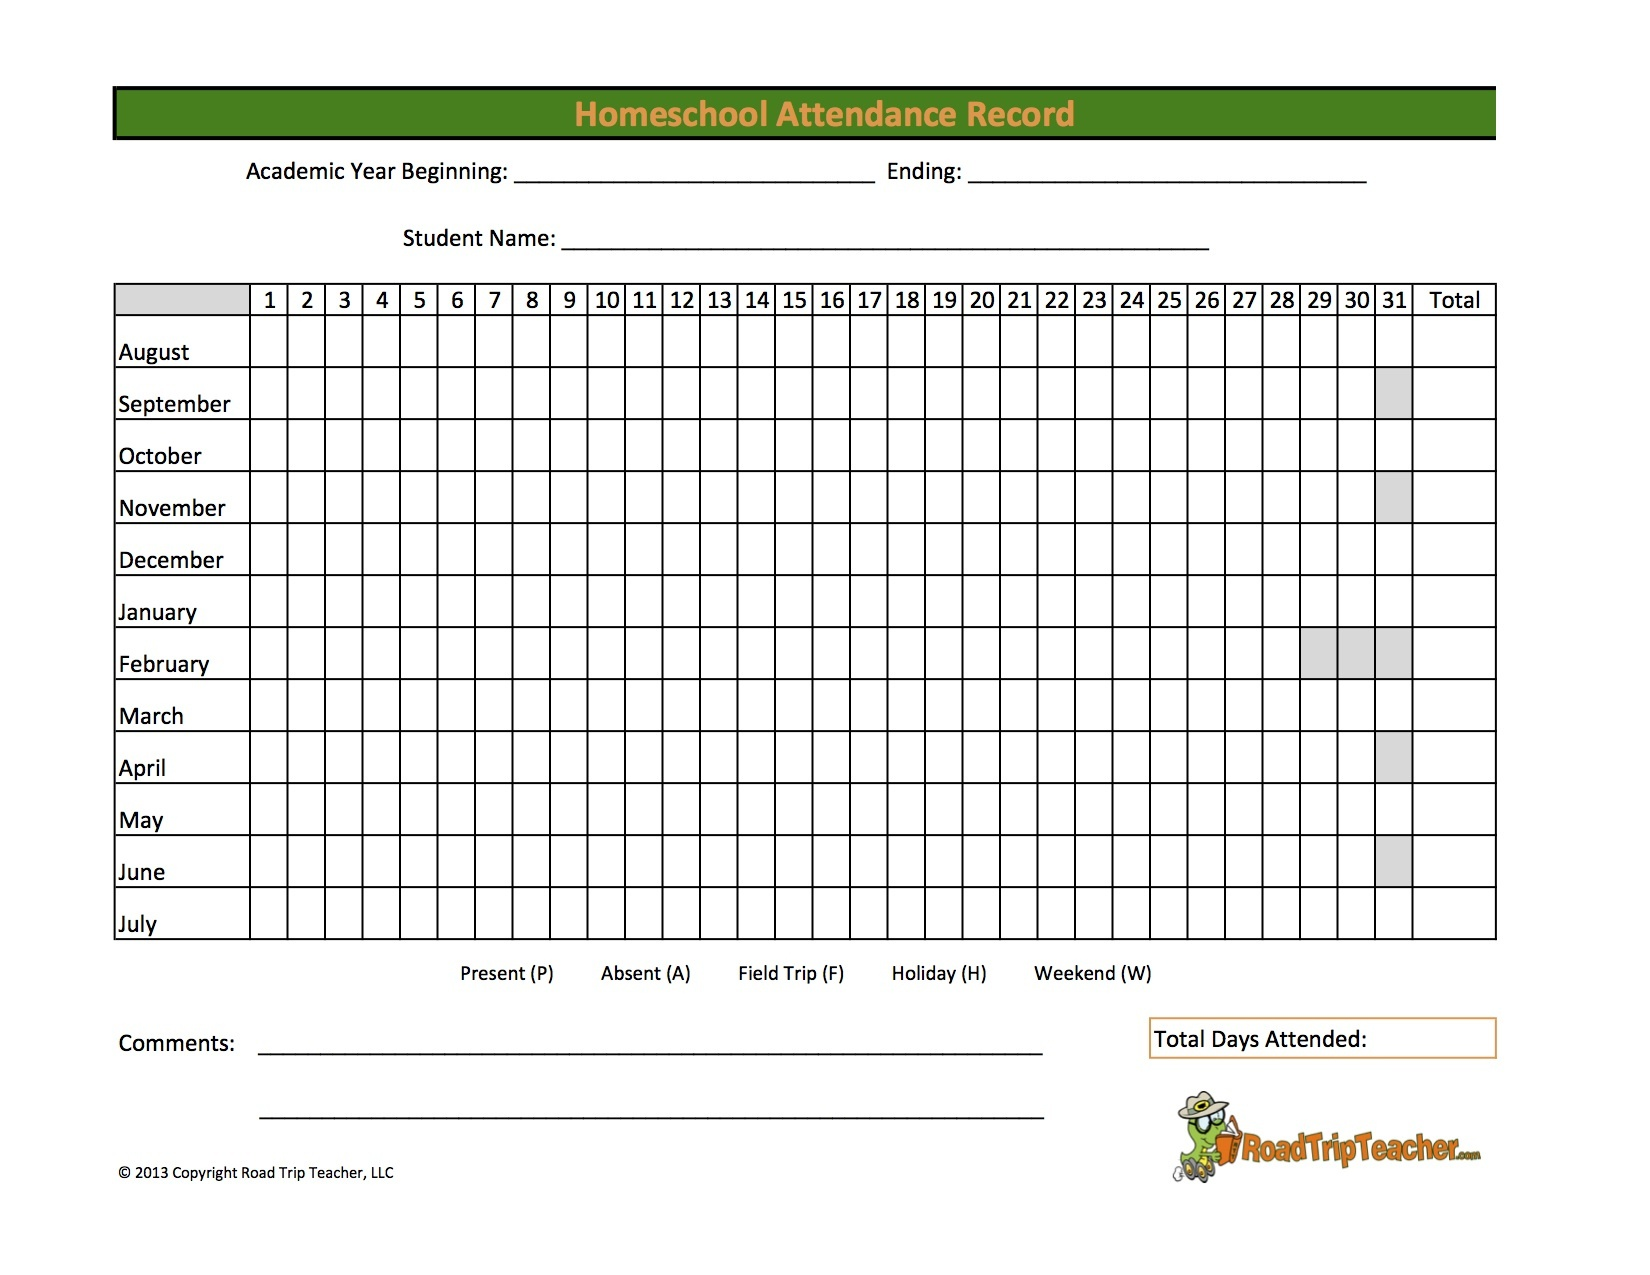 Homeschool Attendance Record - Family Educational Resources | Road - Free Printable Attendance Sheets For Homeschool